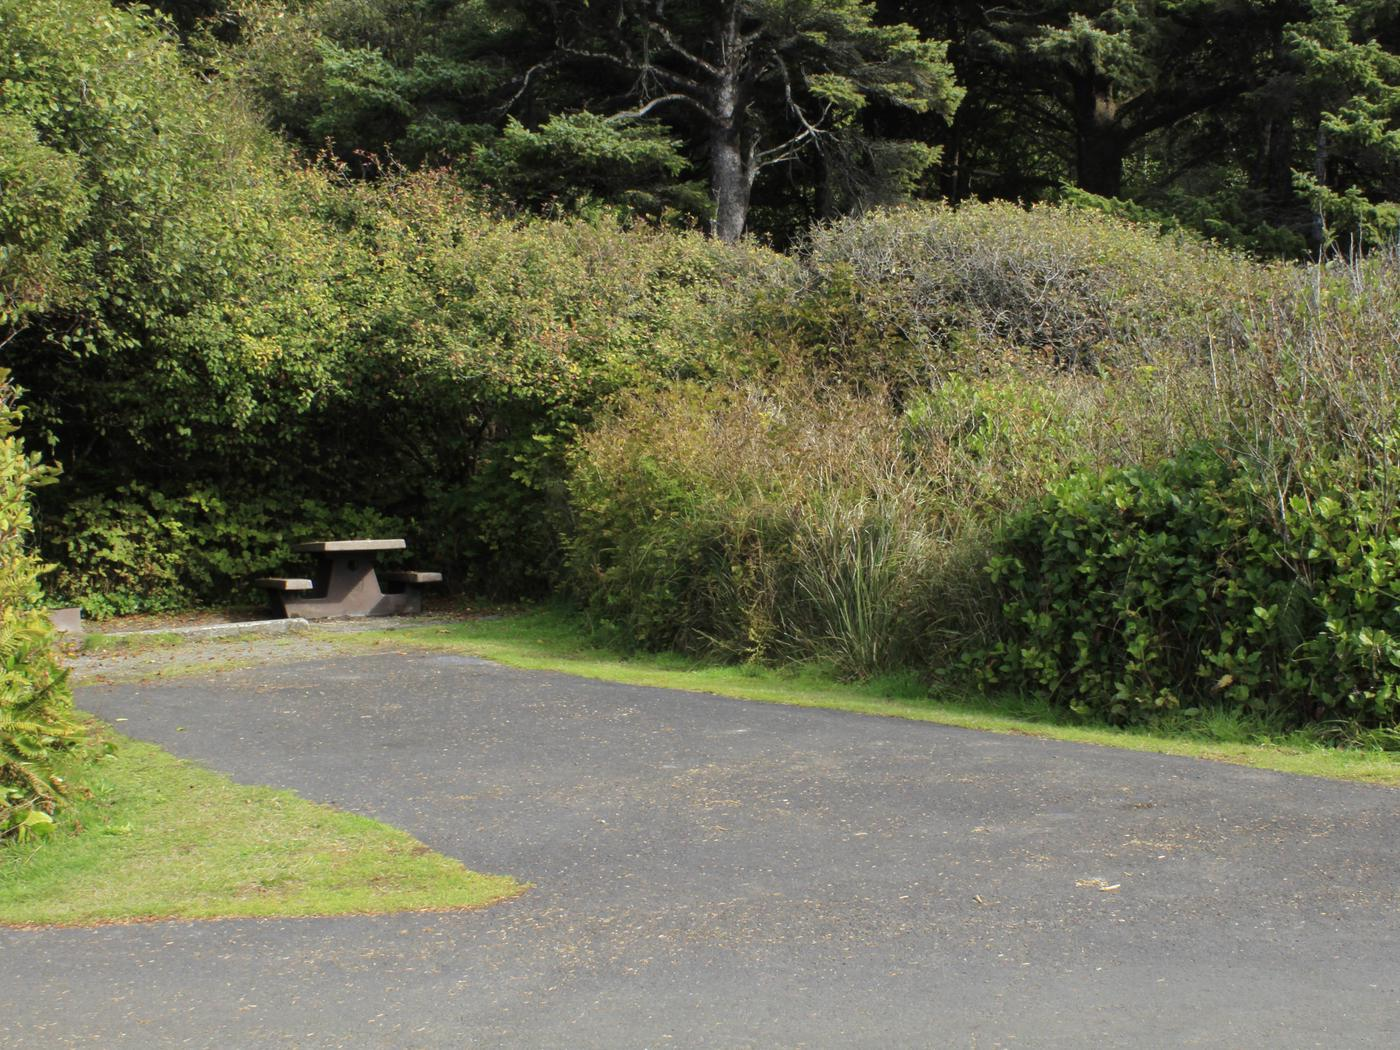 Picture of campsite with picnic tableCampsite A17